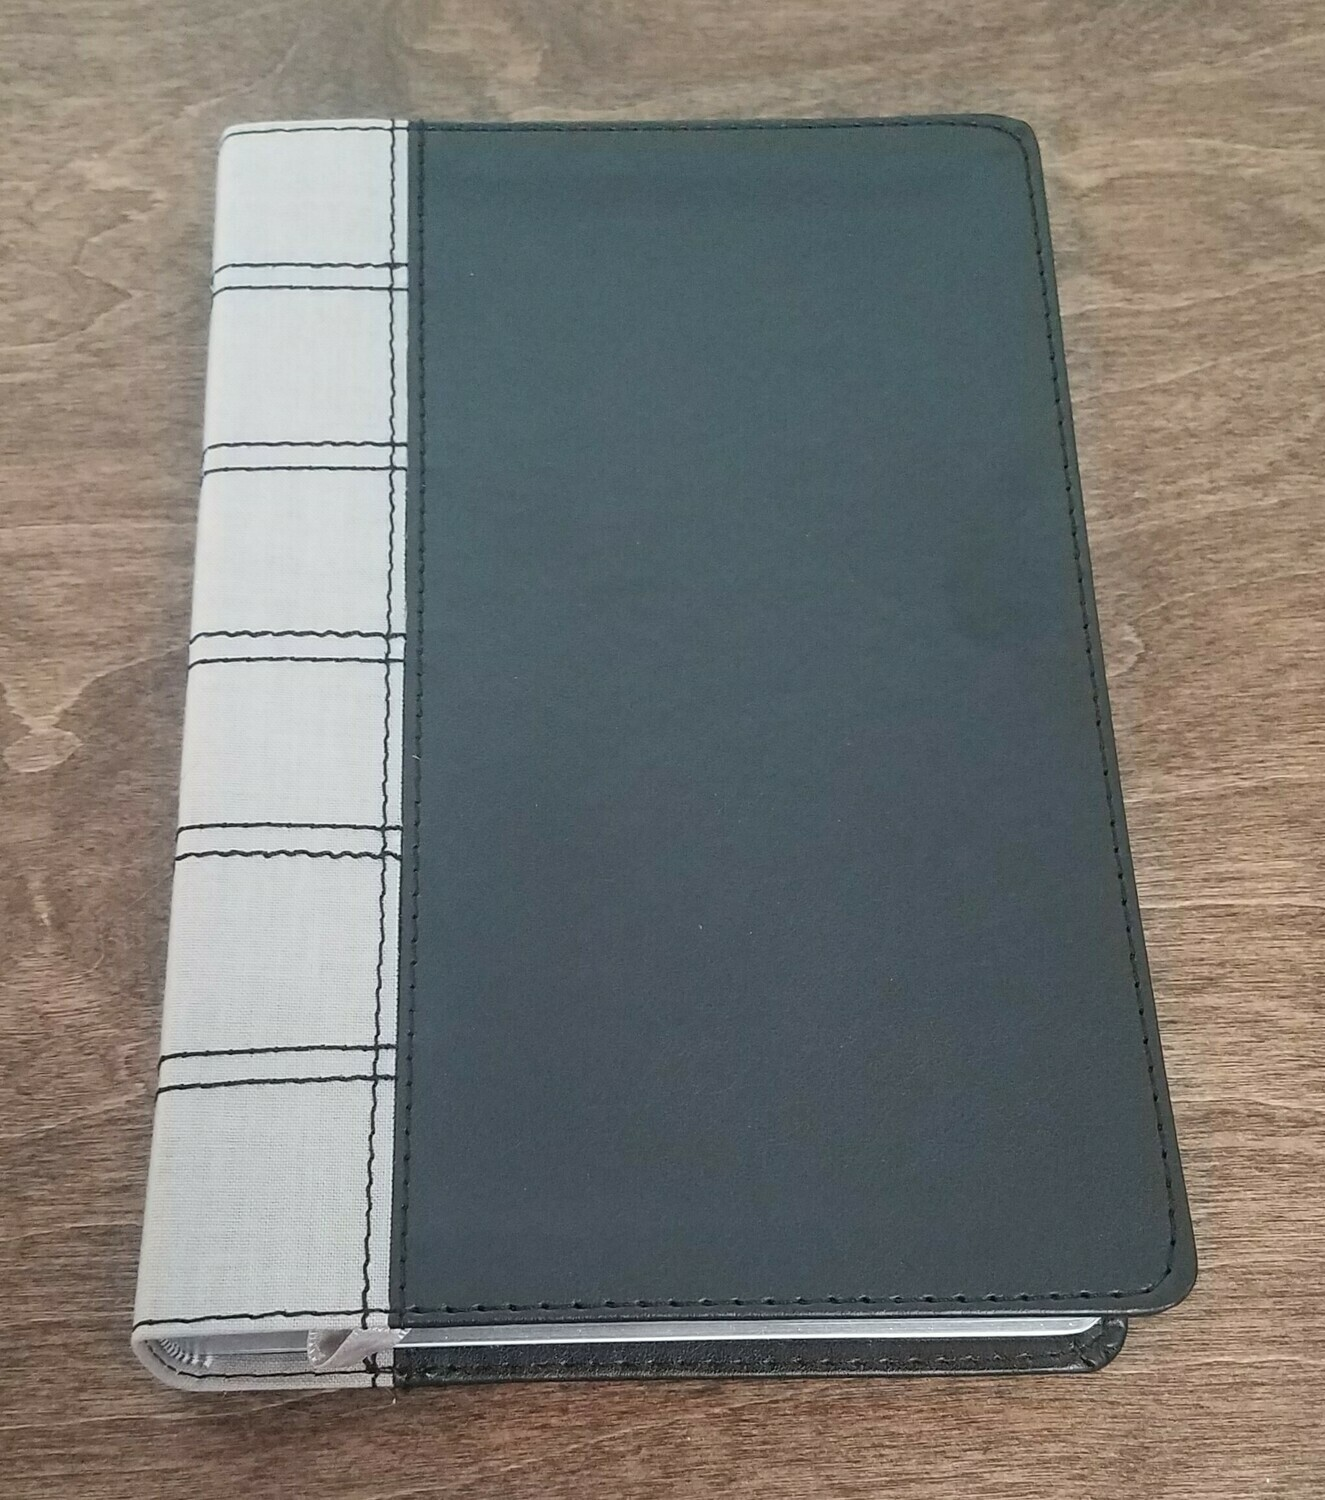 NKJV Deluxe Large Print Personal Size Thumb Indexed Reference Bible - Black/Gray LeatherTouch